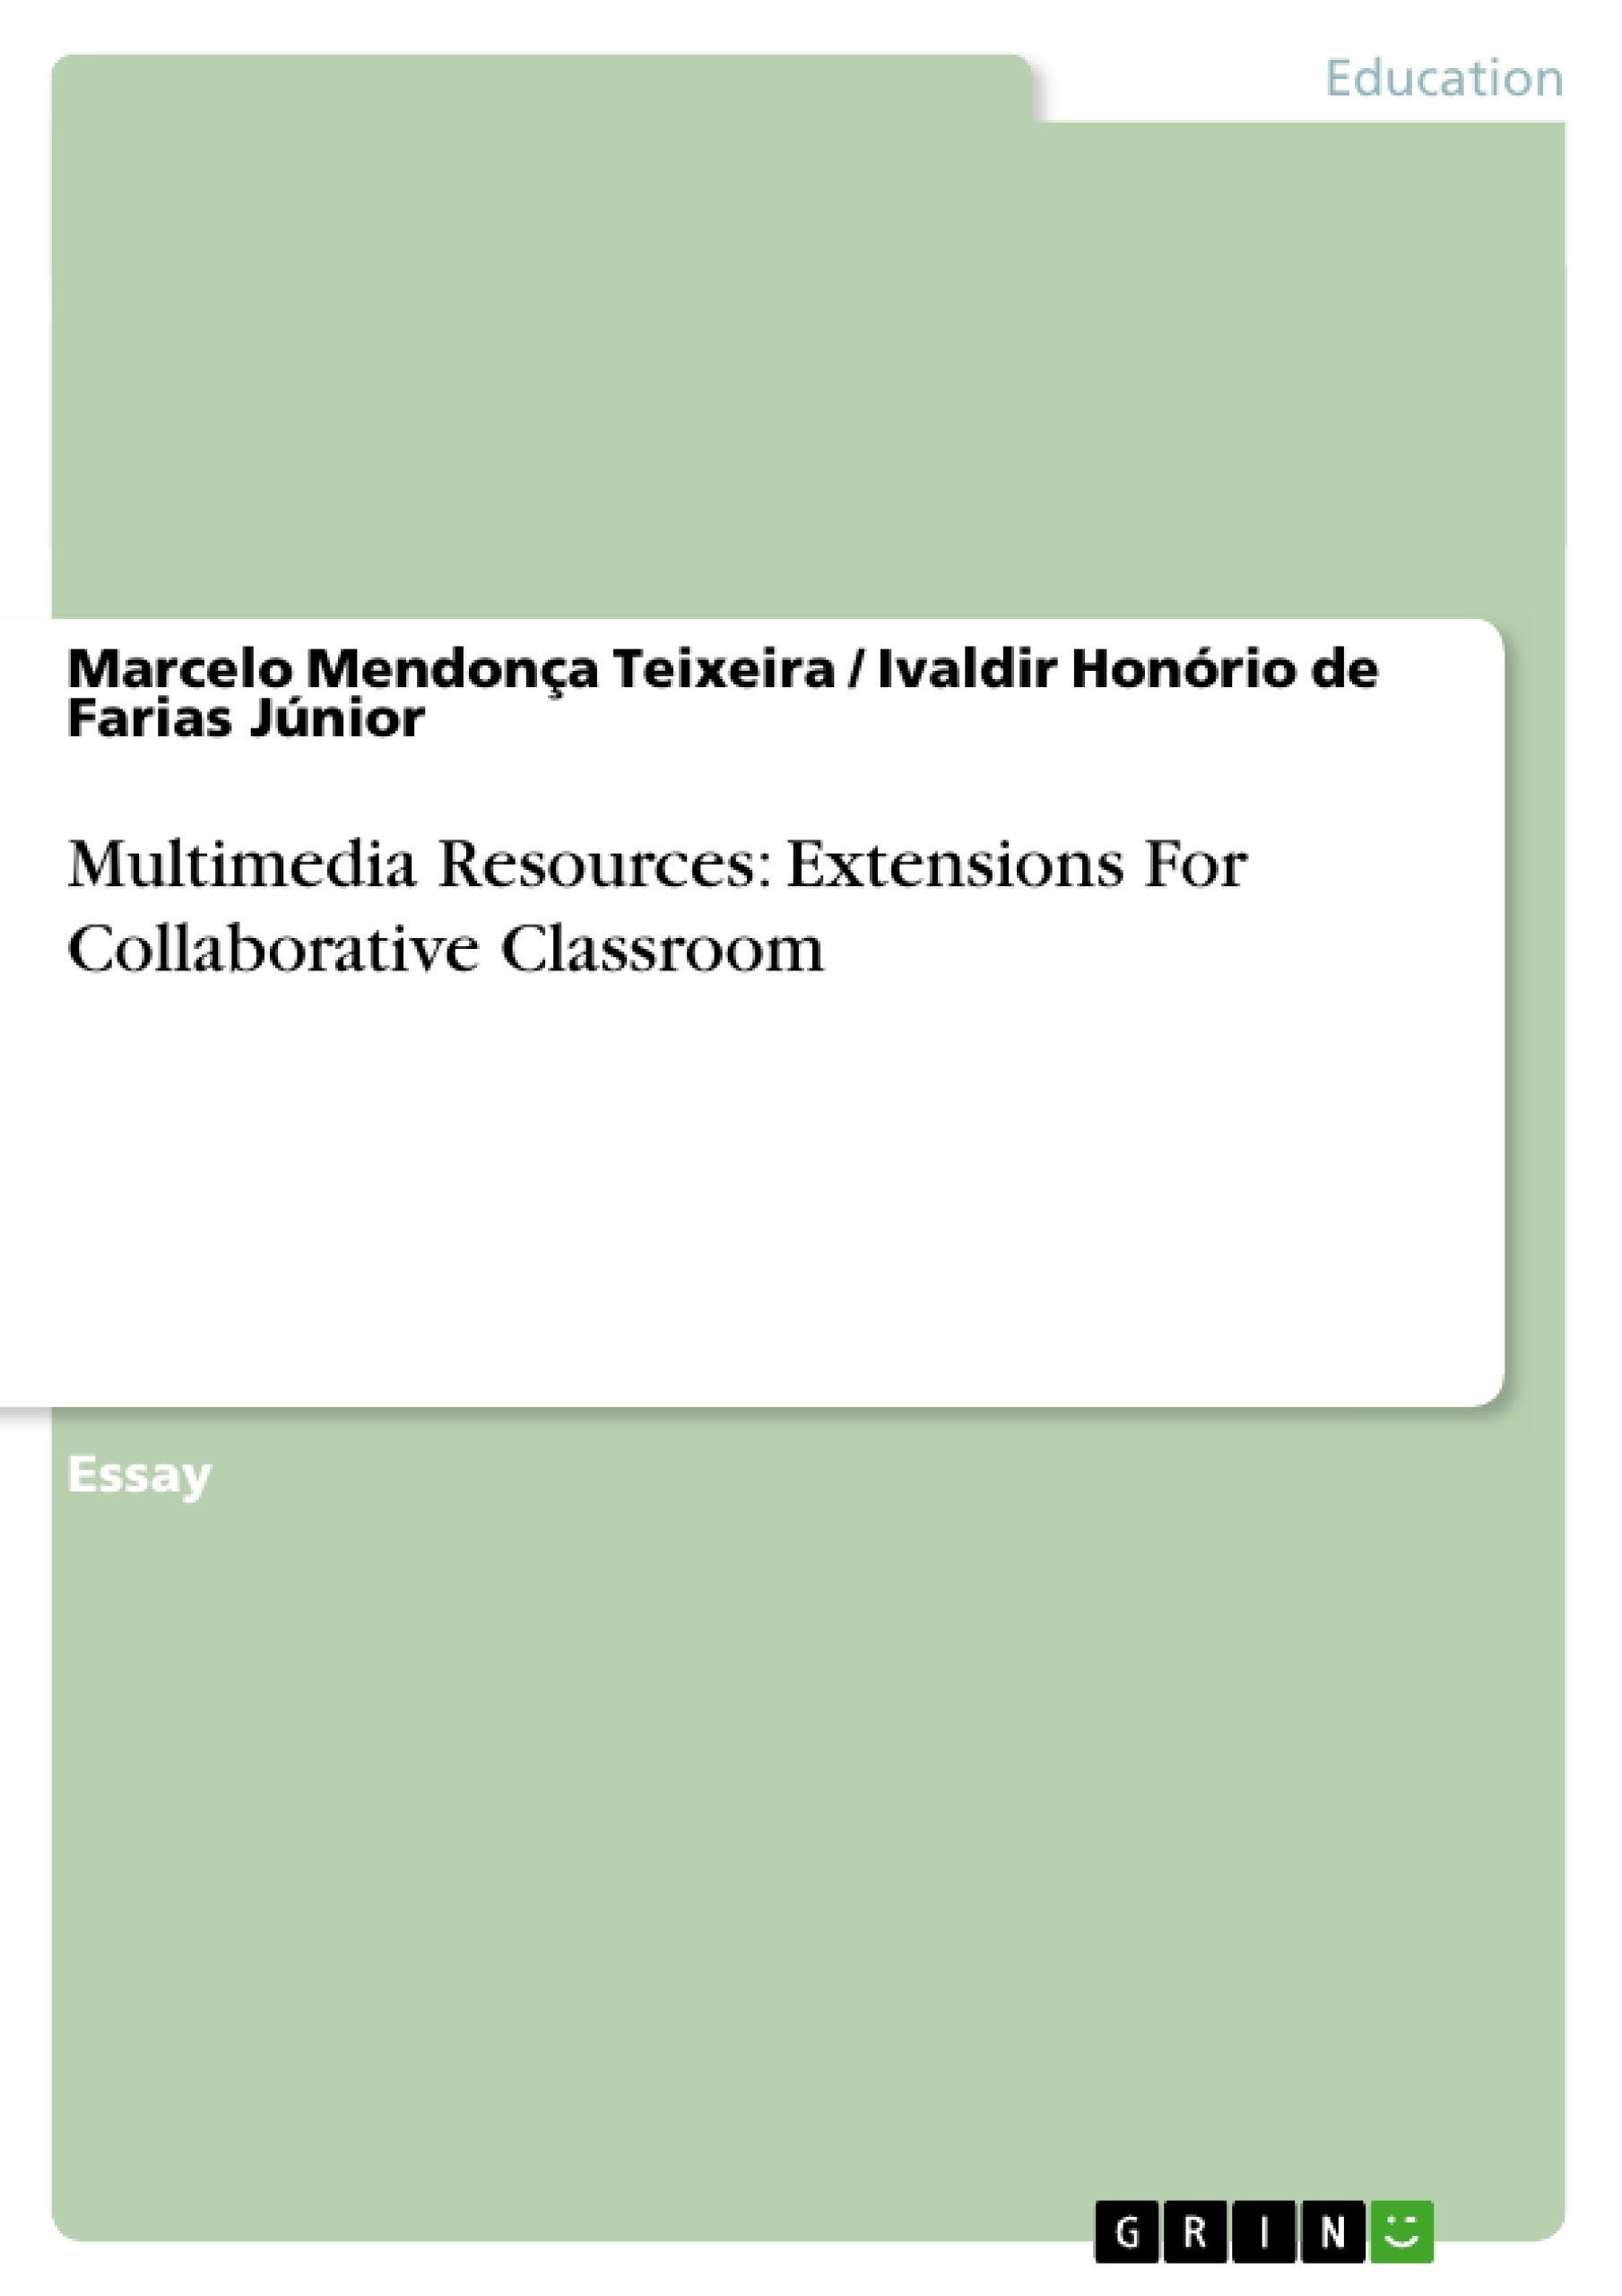 Title: Multimedia Resources: Extensions For Collaborative Classroom